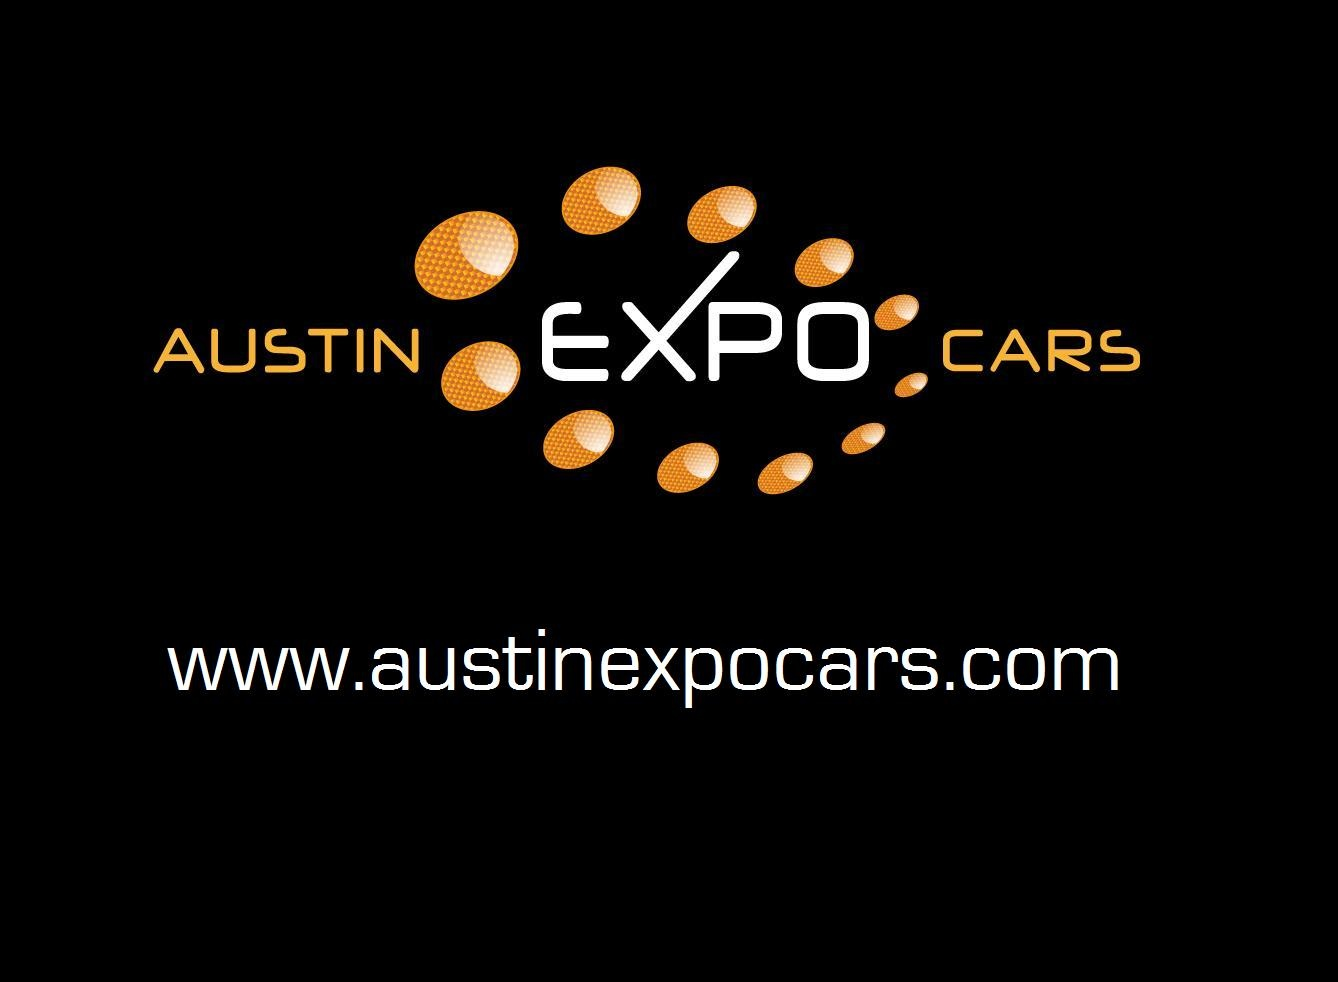 Austin Expo Cars Wonderful Image Gallery